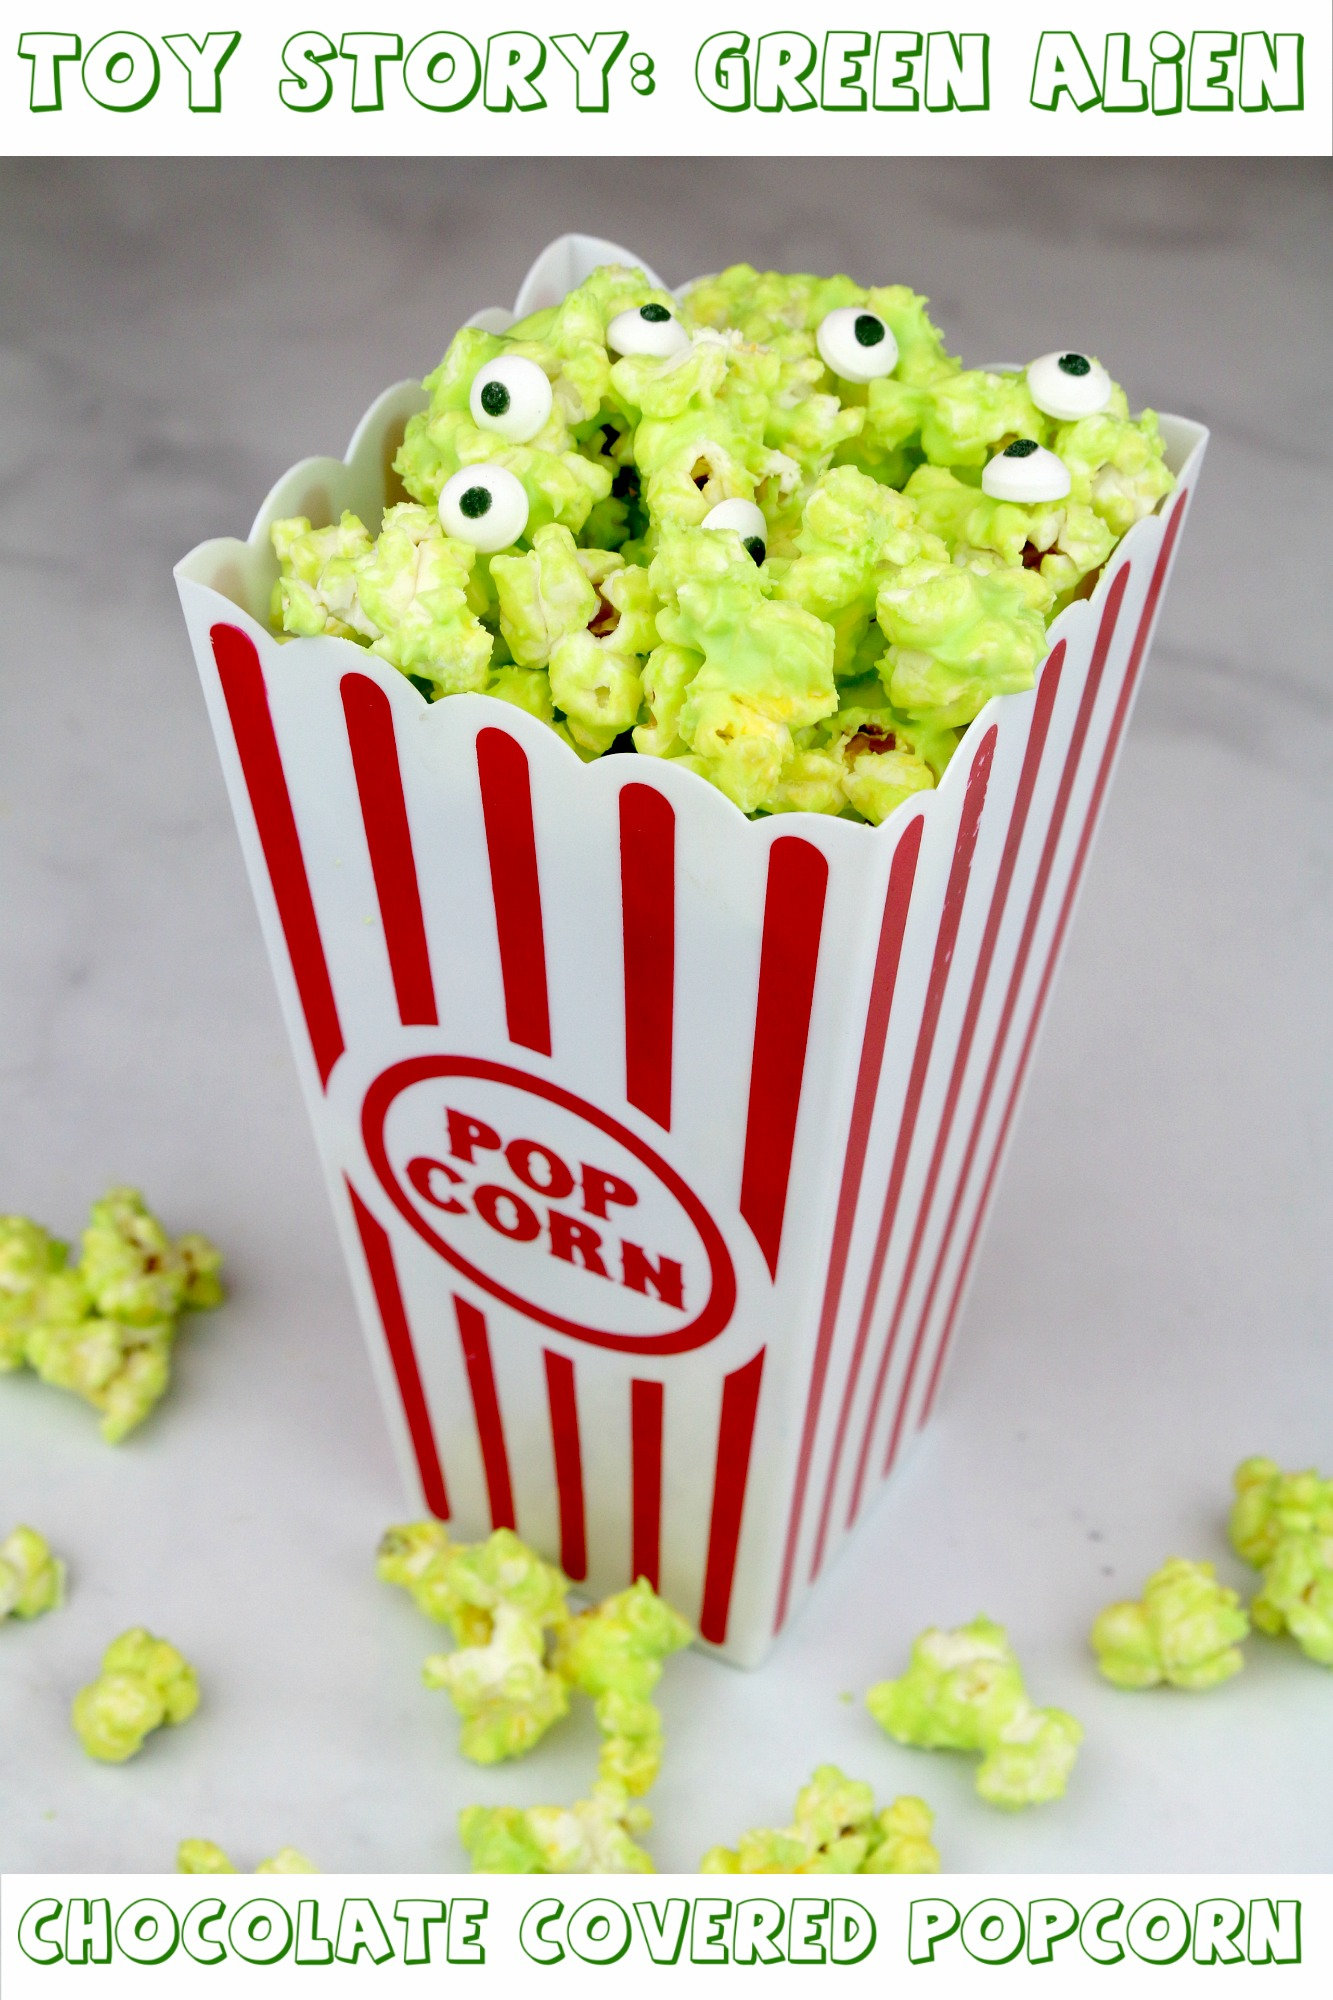 Toy Story Green Alien Chocolate Covered Popcorn